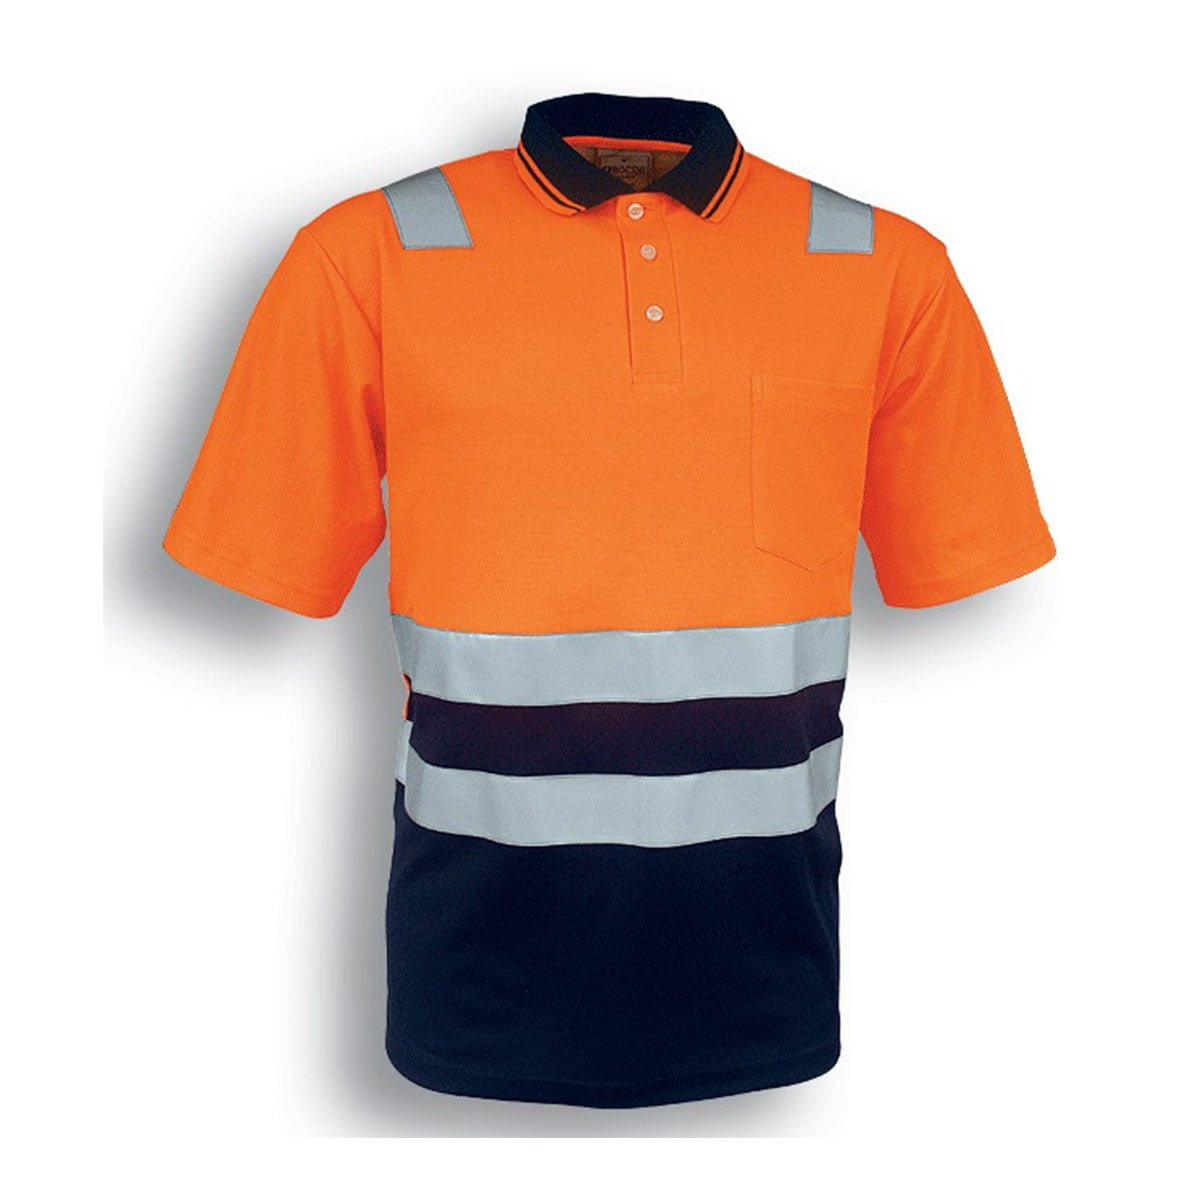 HI-VIS POLYFACE/COTTON BACK POLO WITH TAPE – S/S-Orange / Navy